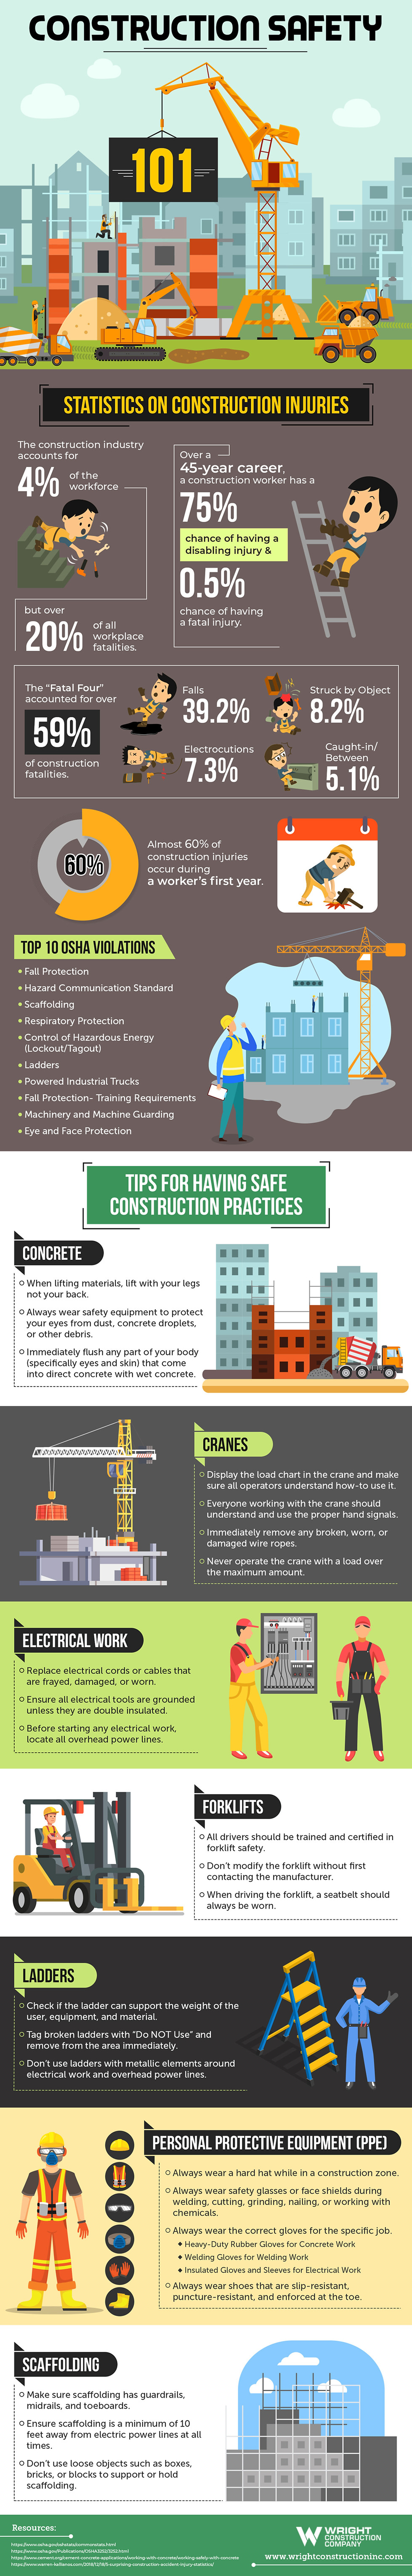 Construction-Safety-101.jpg